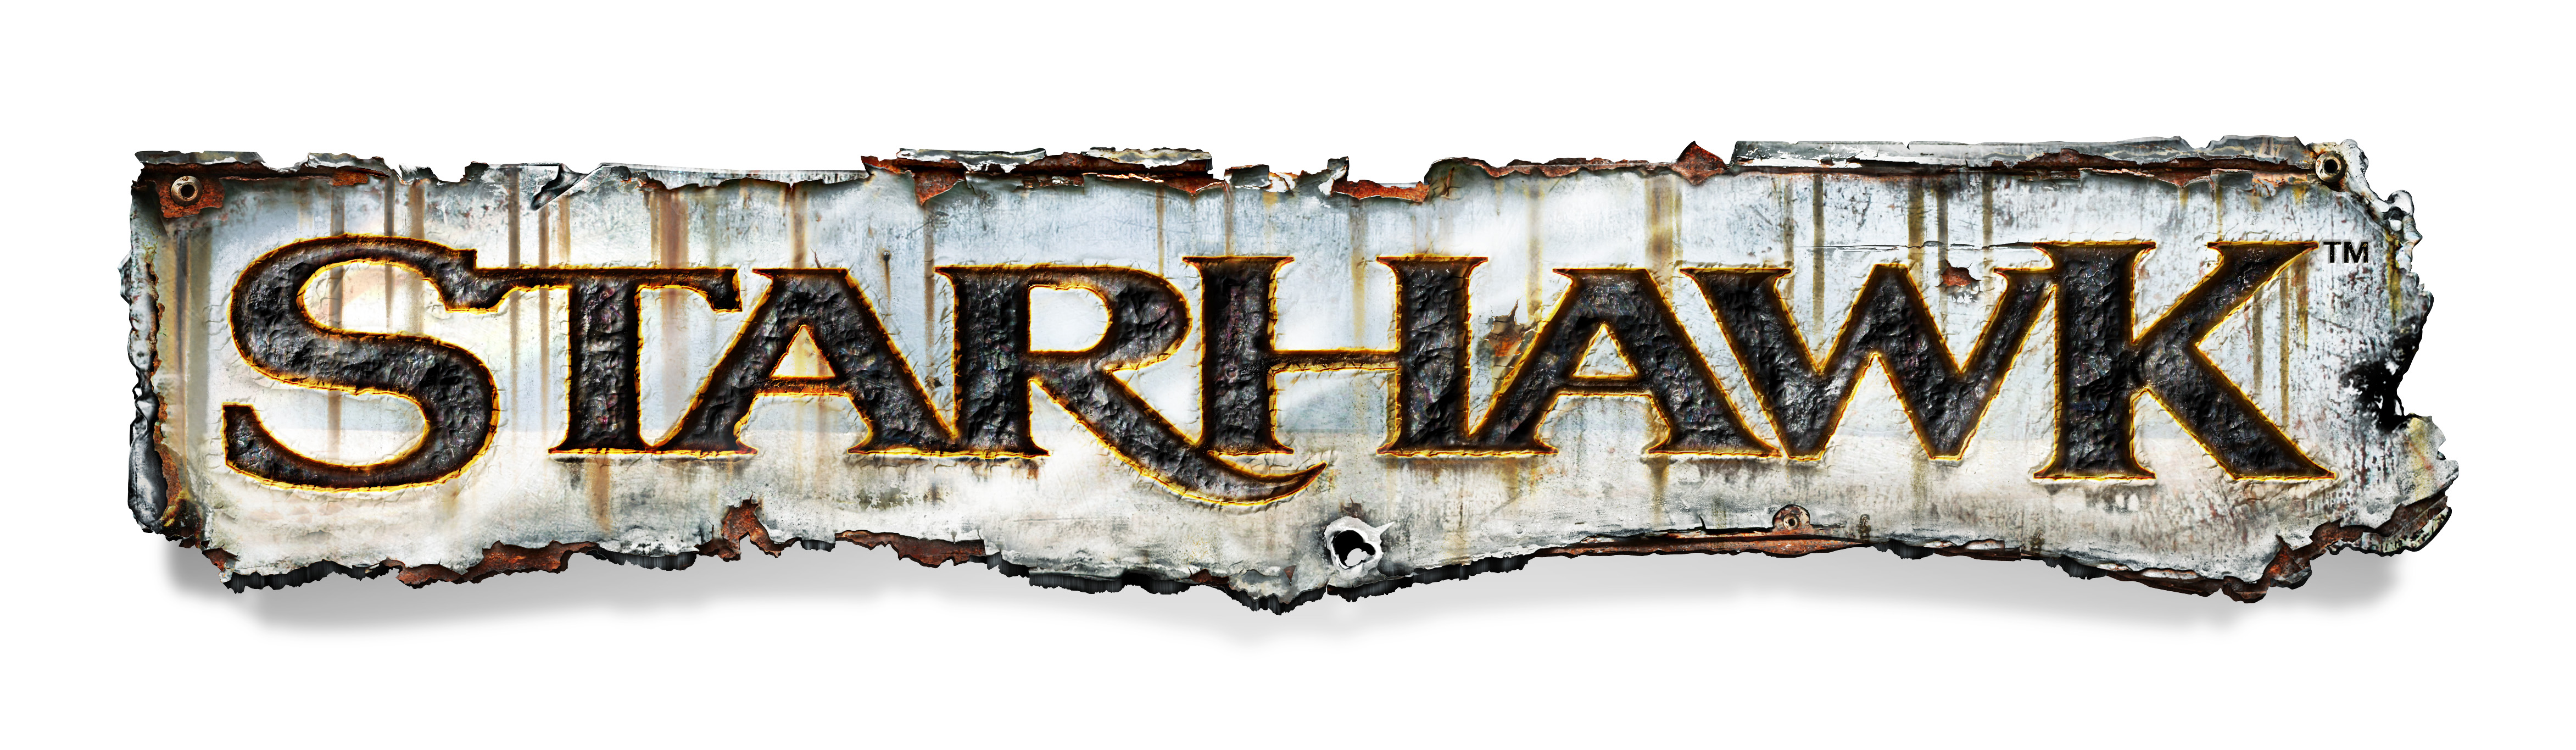 StarHawk has been awarded the Urgent Fury 2012 Multiplayer Tournament Title of the Year